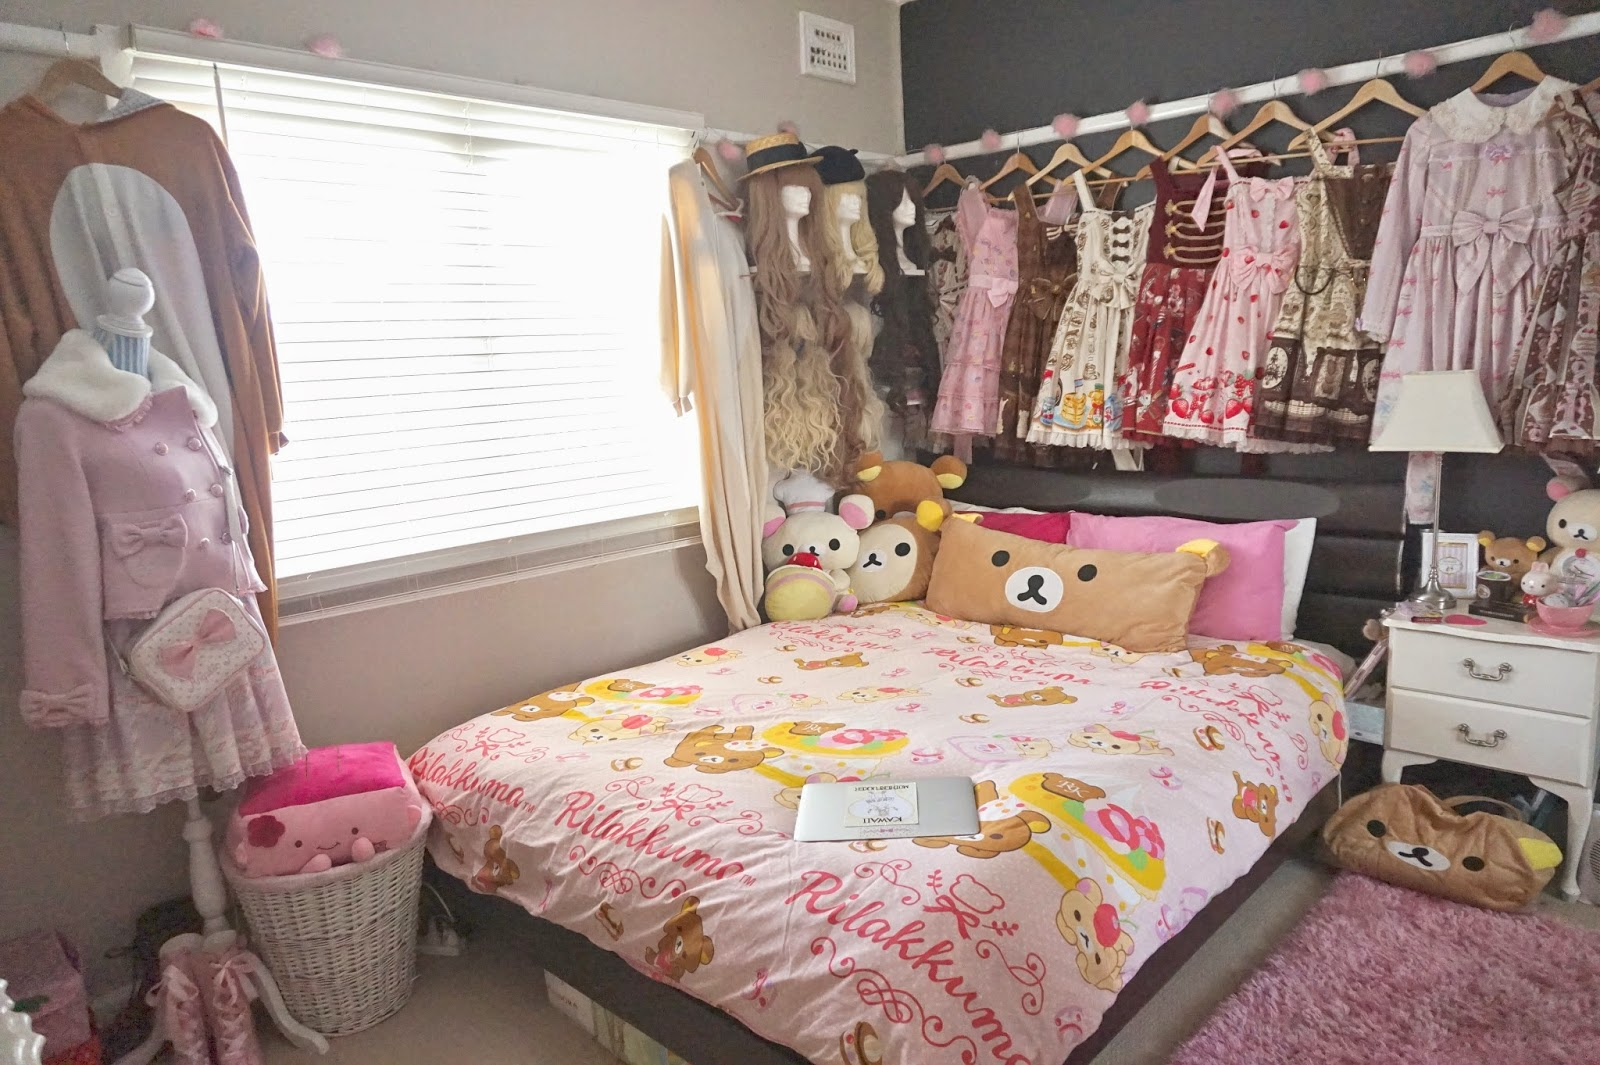 milkyfawn a lolita blog welcome to my bedroom